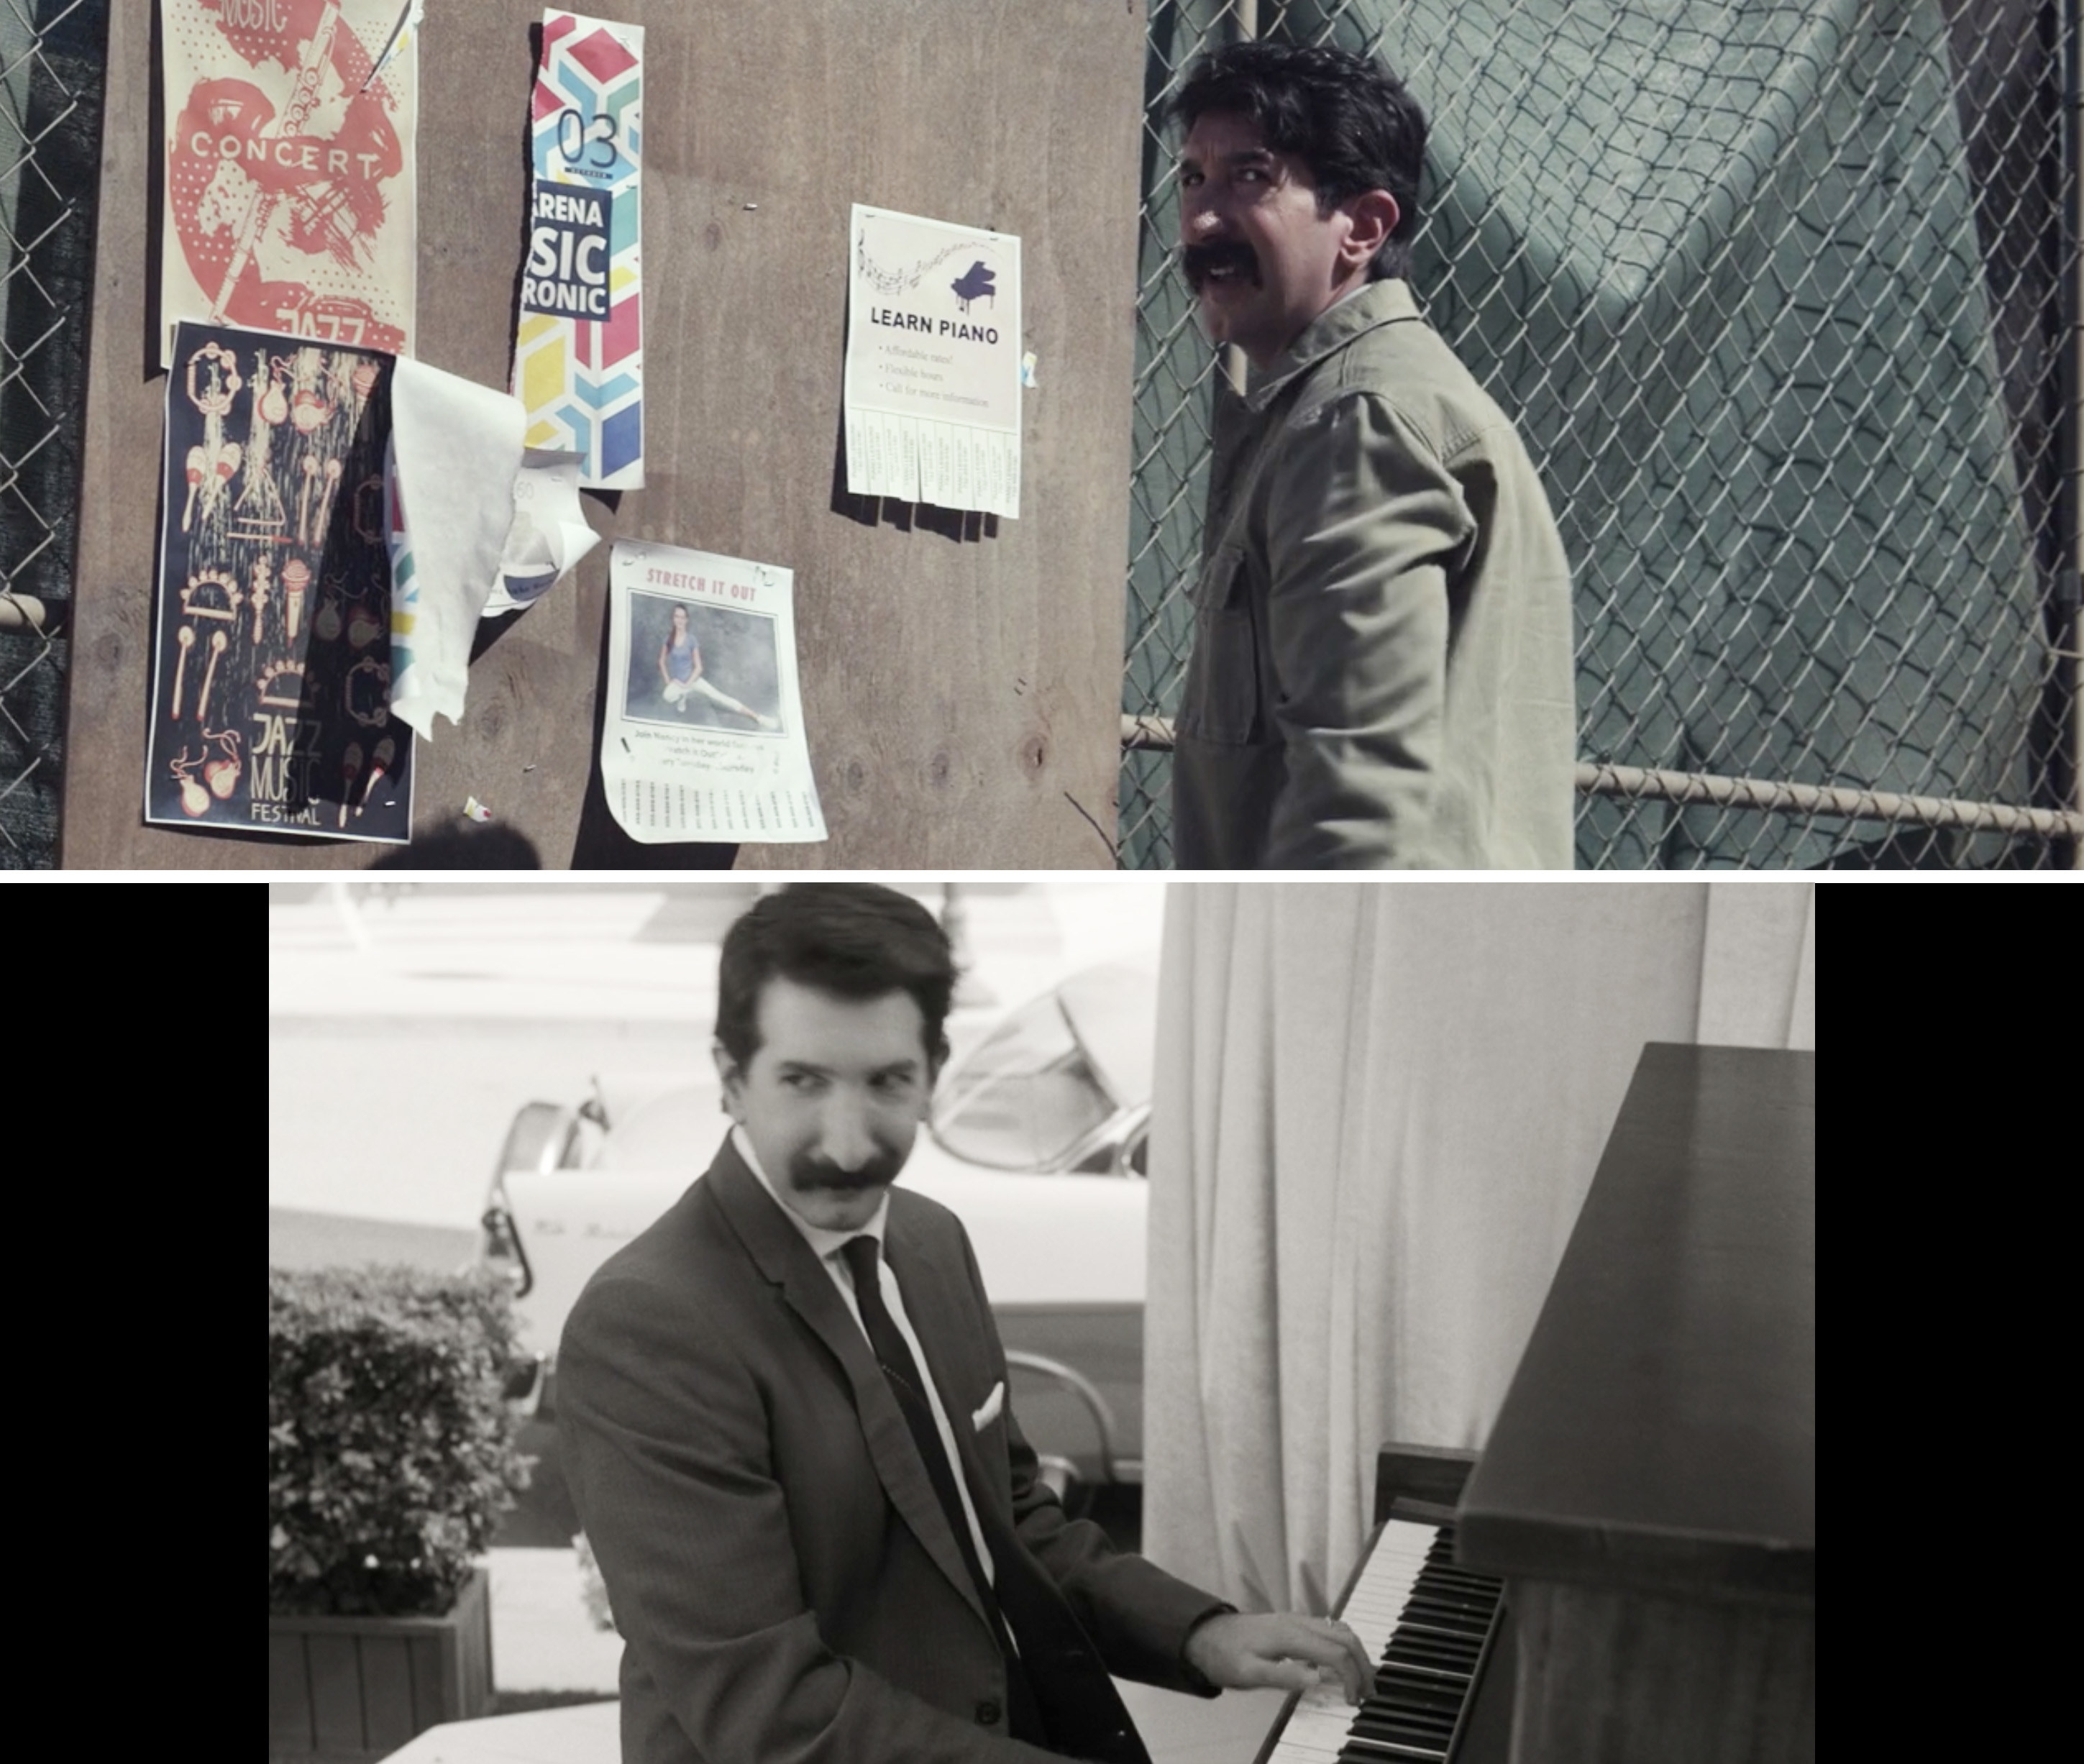 Phil putting up an add for piano lessons vs. Phil playing piano at the talent show